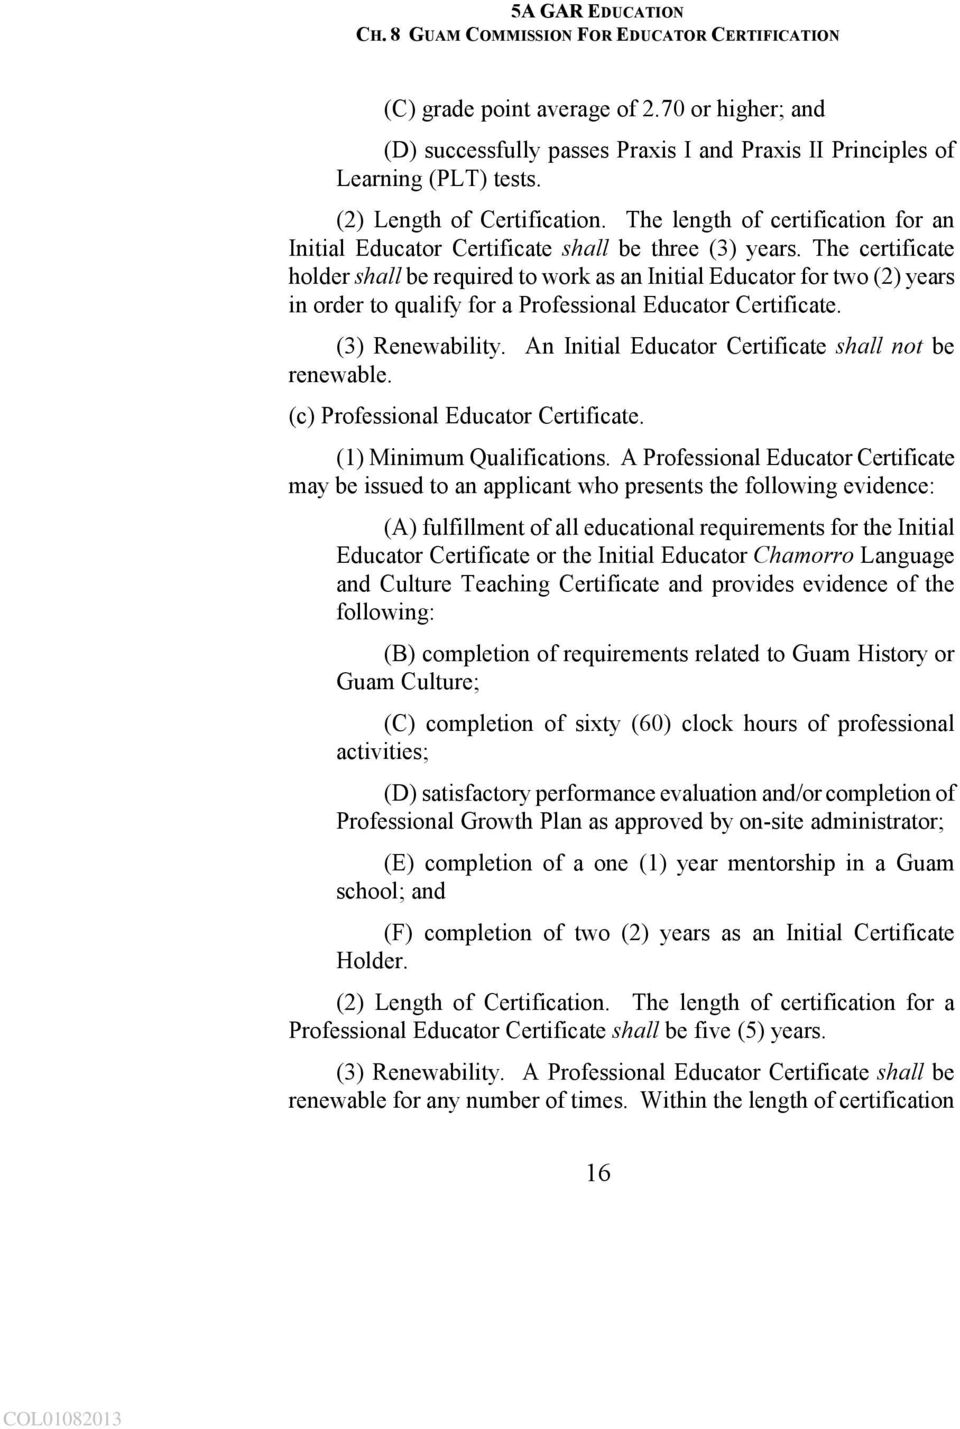 The certificate holder shall be required to work as an Initial Educator for two (2) years in order to qualify for a Professional Educator Certificate. (3) Renewability.